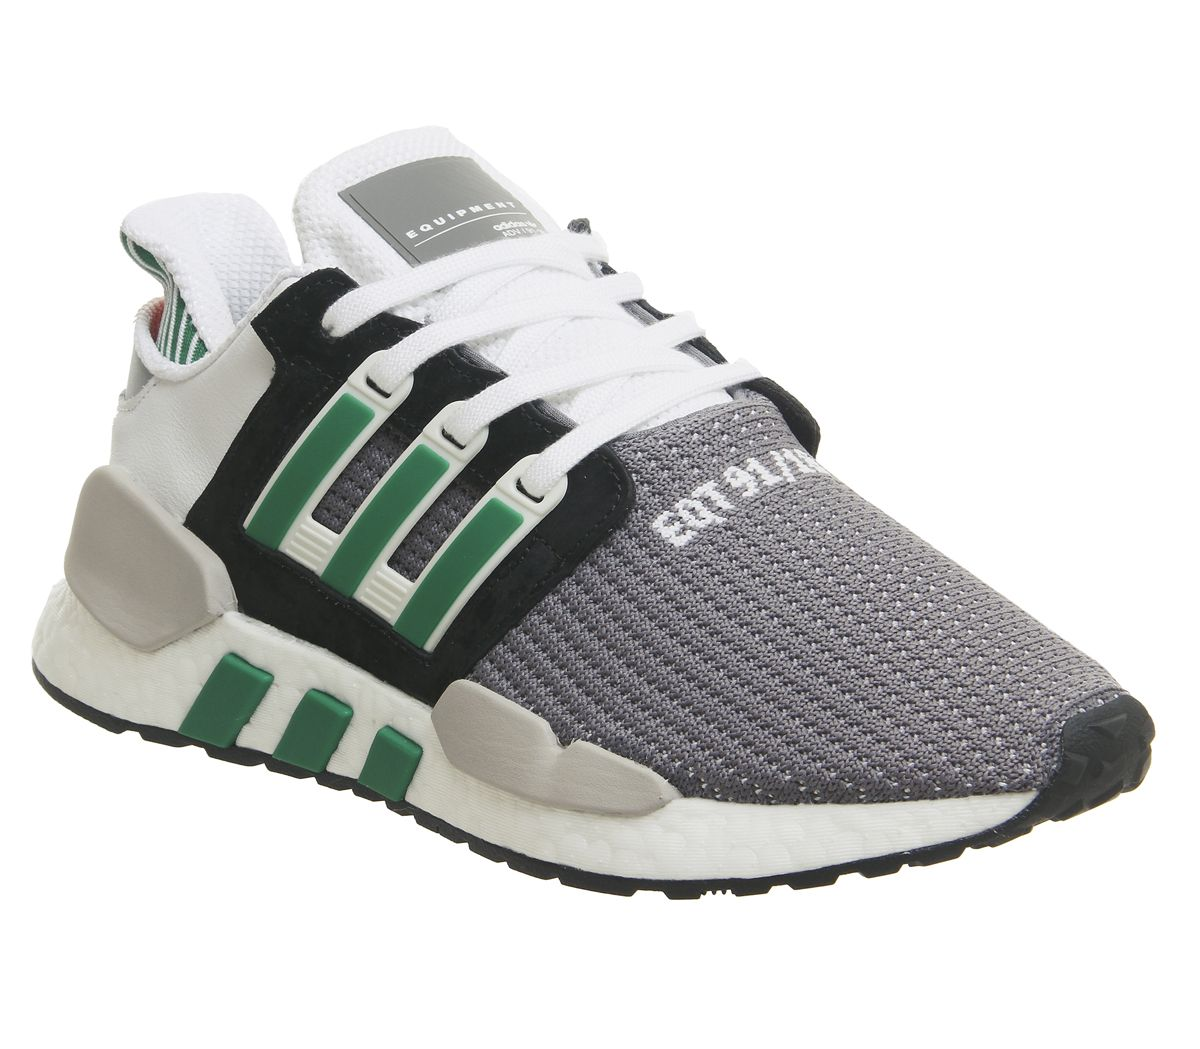 factory price c7590 c5211 Eqt Support 91/18 Trainers